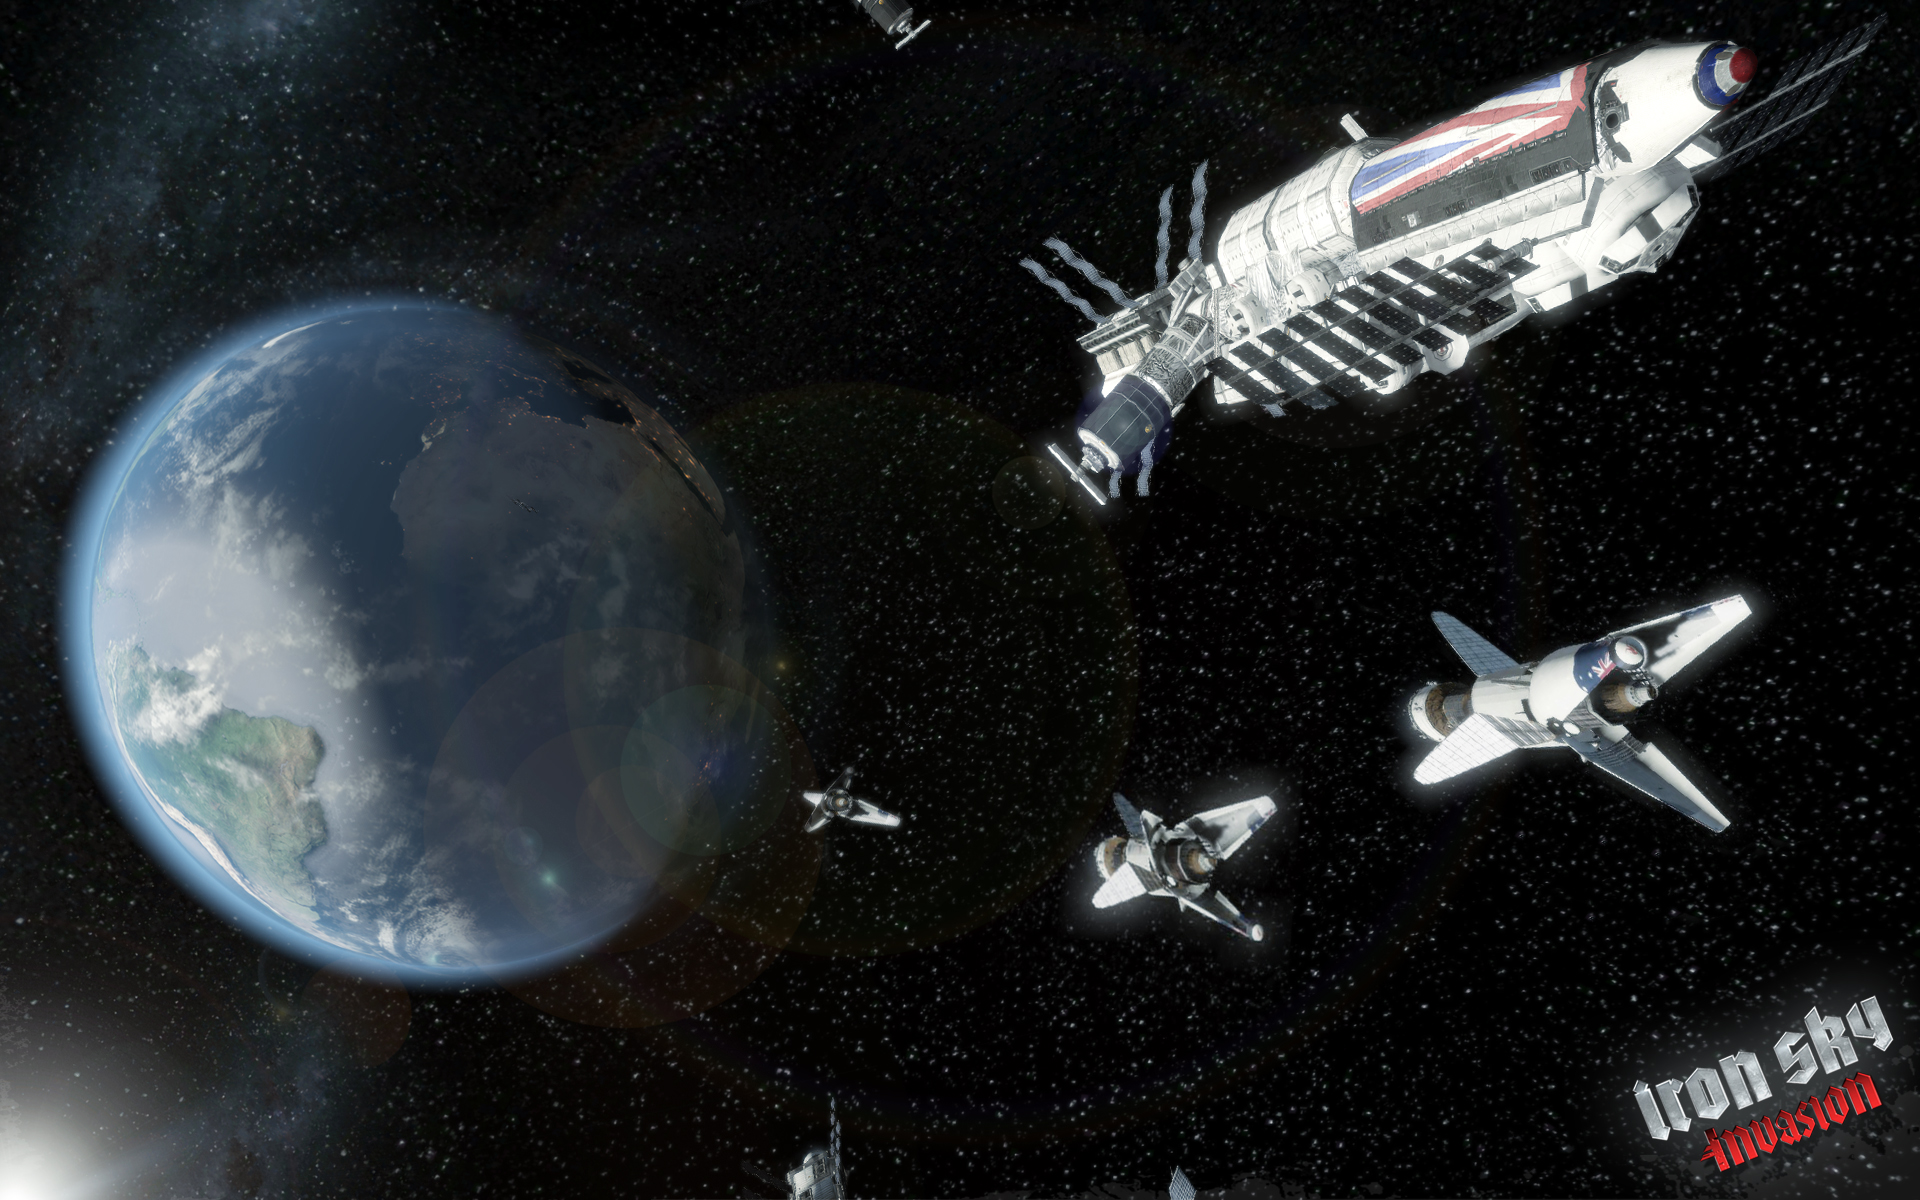 Iron sky invasion image mod db for Jobs in outer space